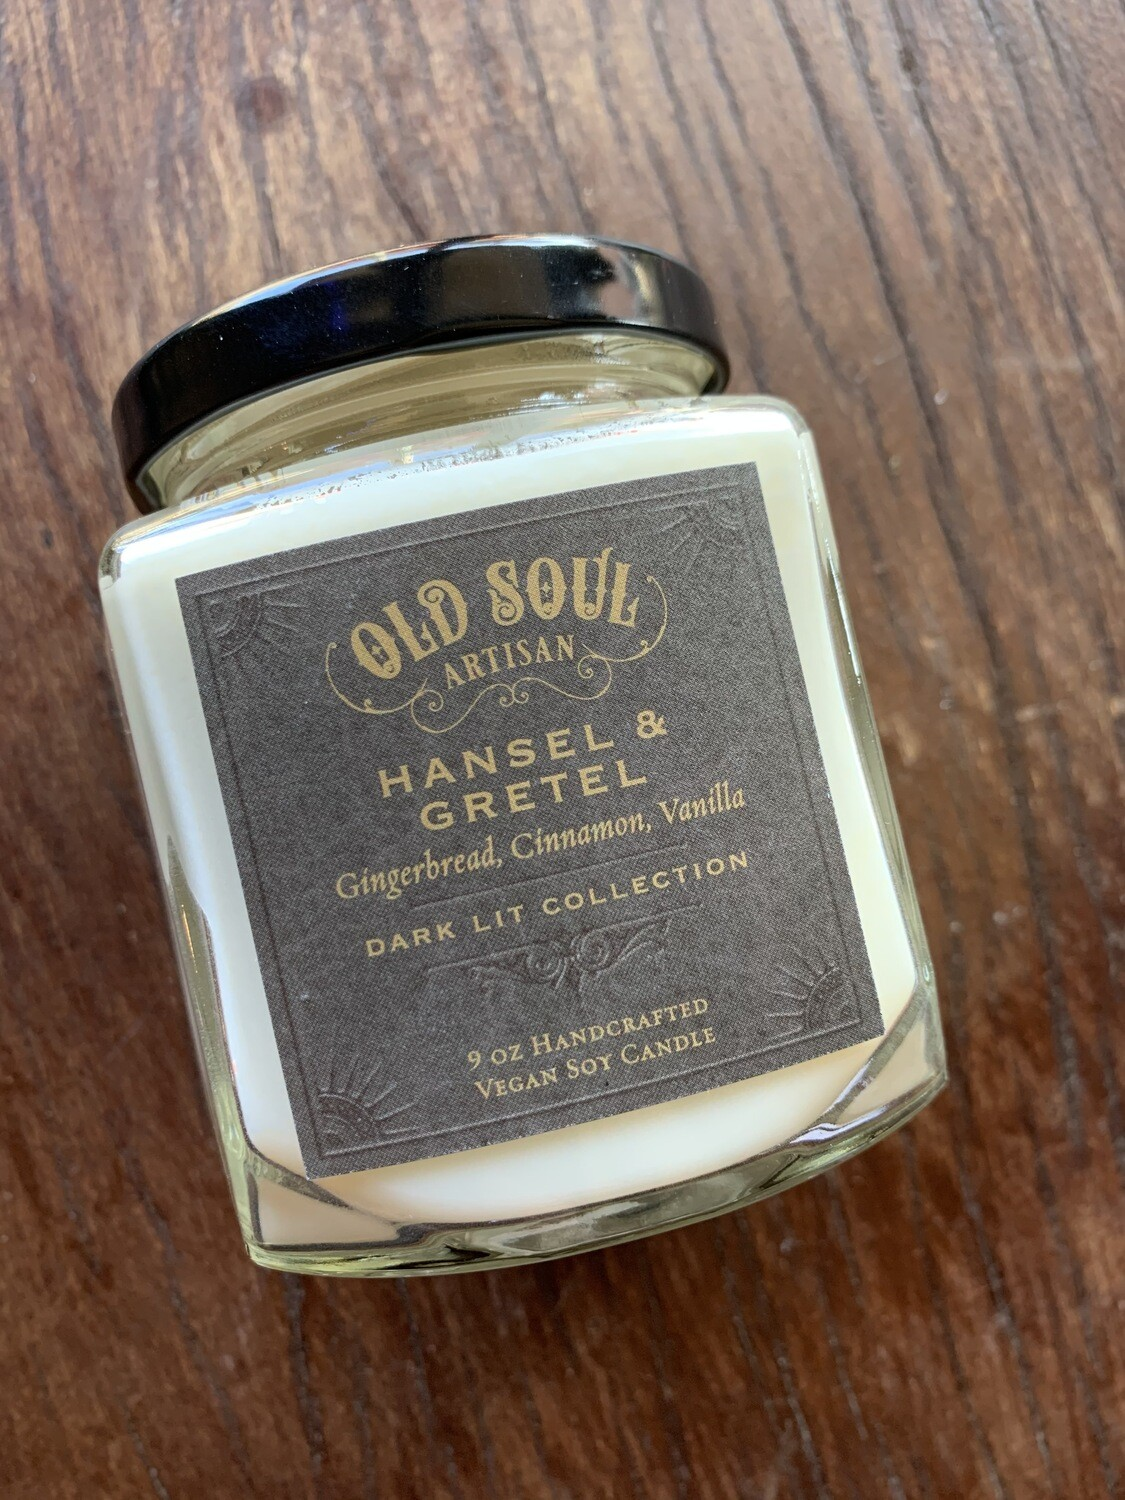 Hansel And Gretel Candle